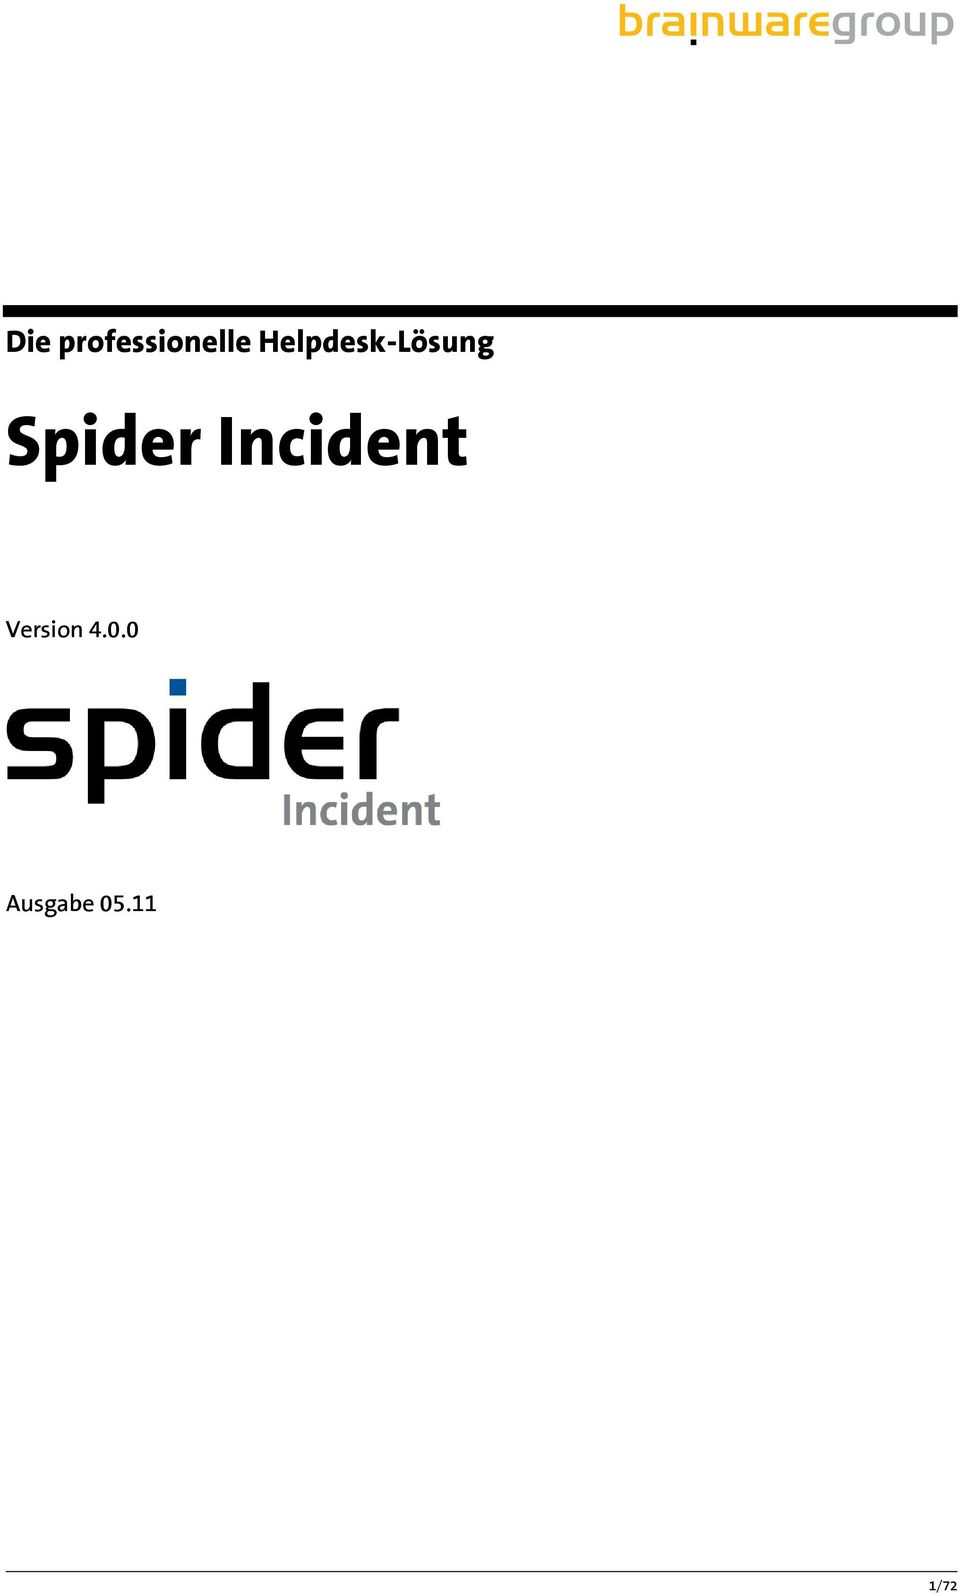 Spider Incident